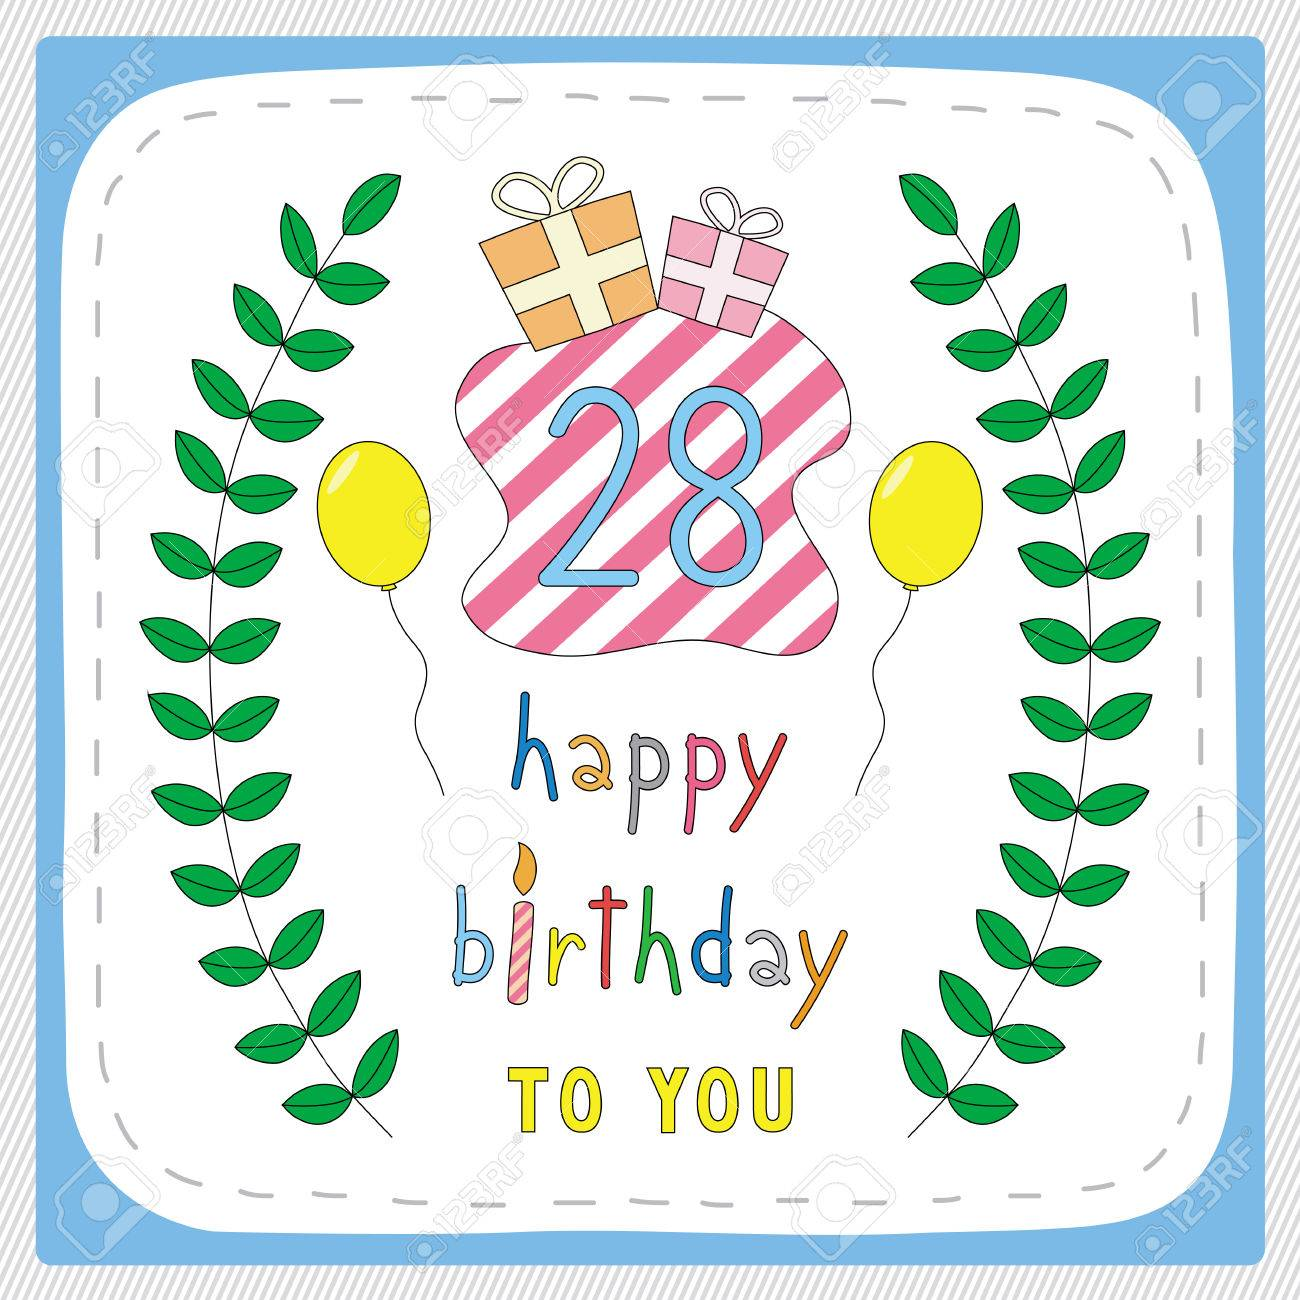 Happy birthday card with 28th birthday and for 28 years anniversary happy birthday card with 28th birthday and for 28 years anniversary celebration stock vector bookmarktalkfo Gallery